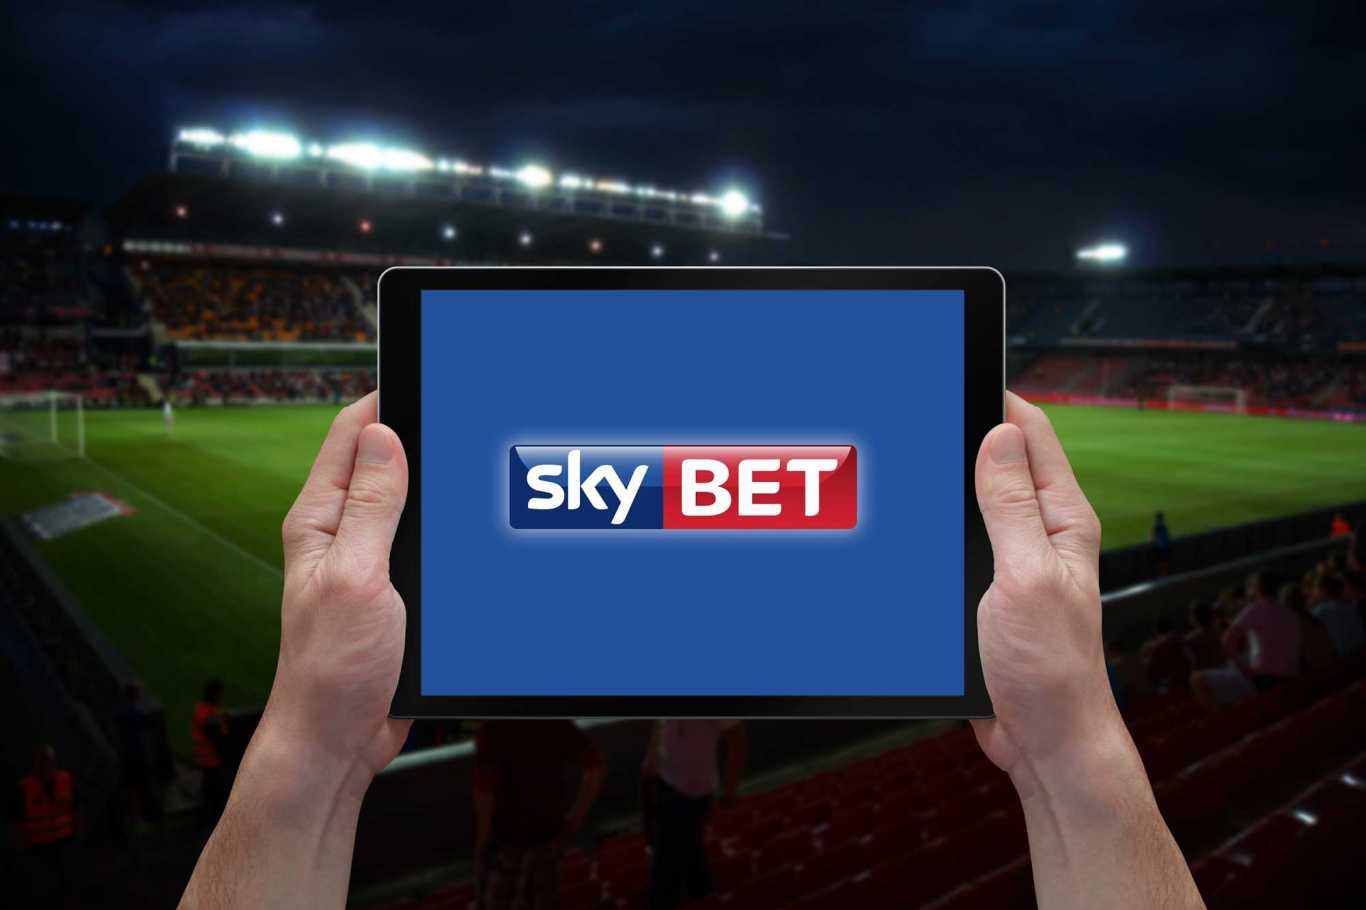 Skybet live stream: Top Opportunities with Sky Sports Live Broadcasting